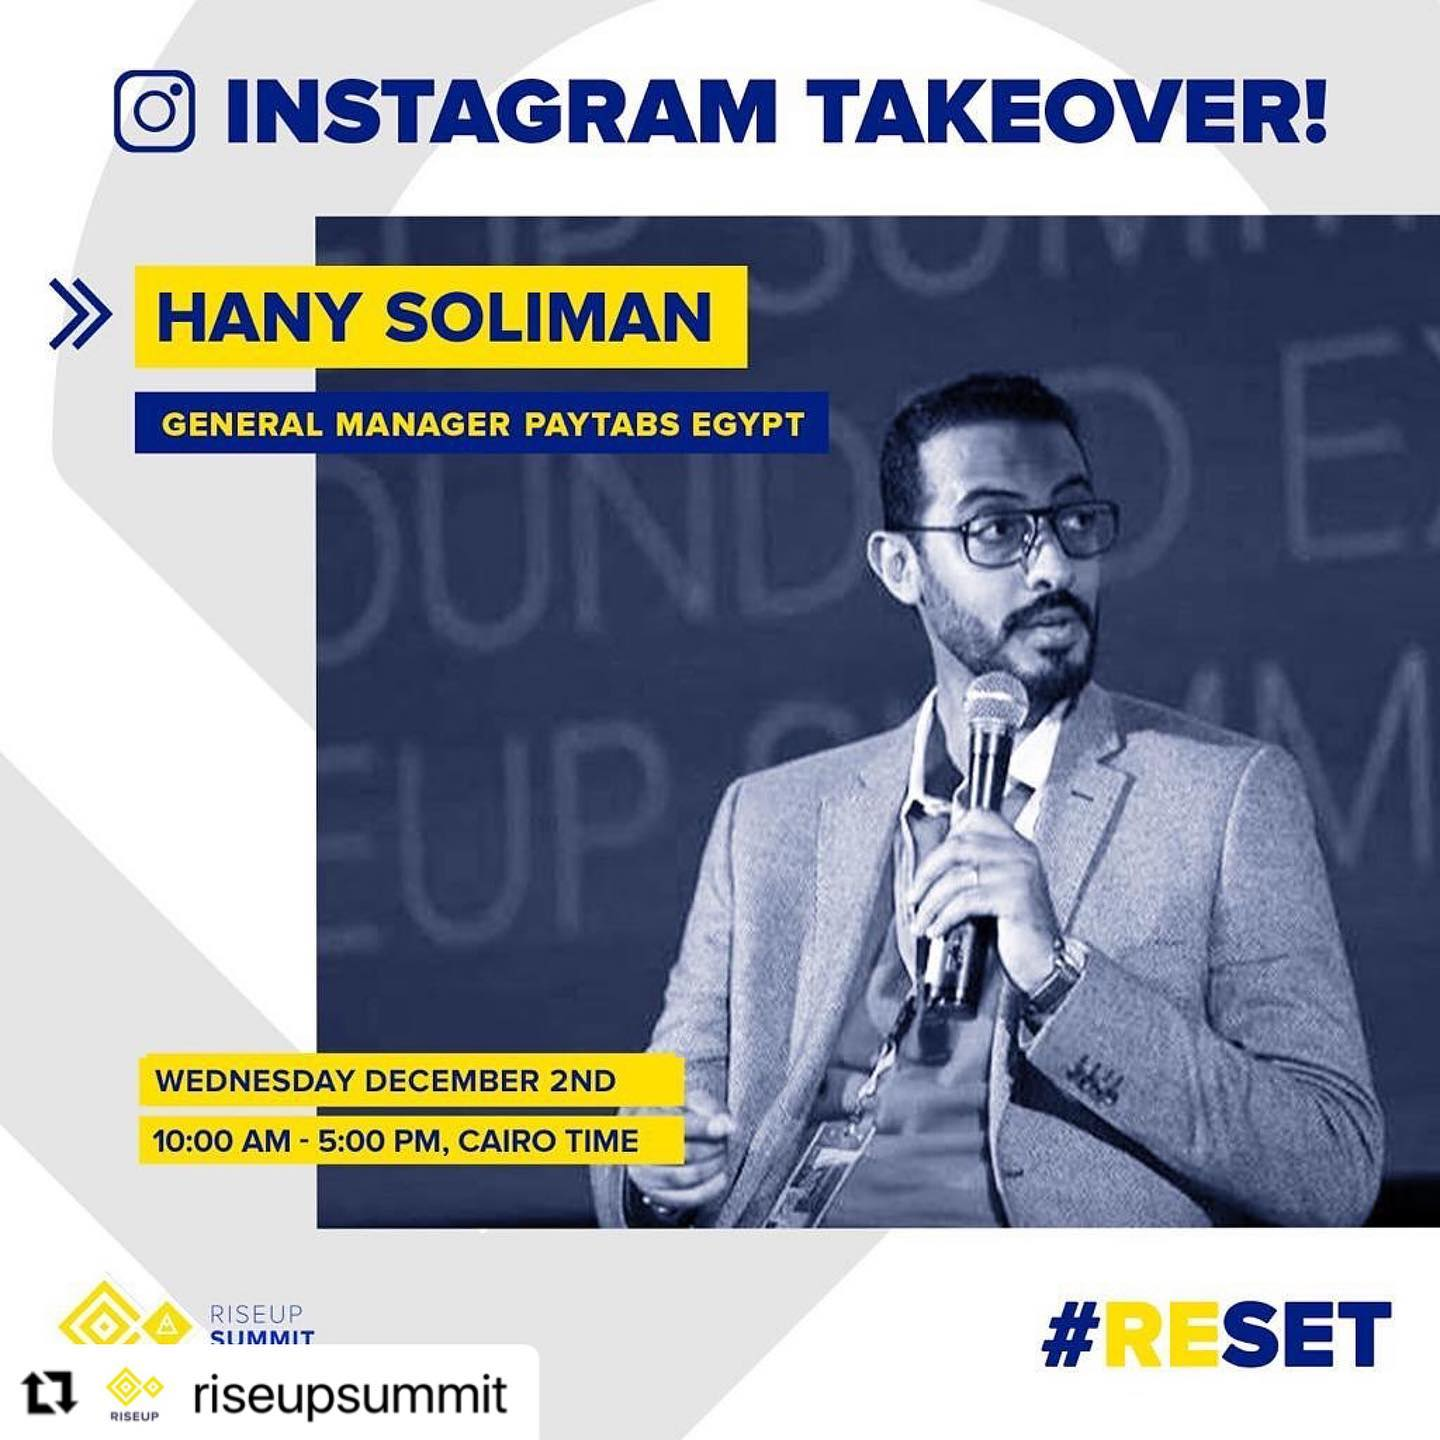 Rise up Summit Instagram Takeover